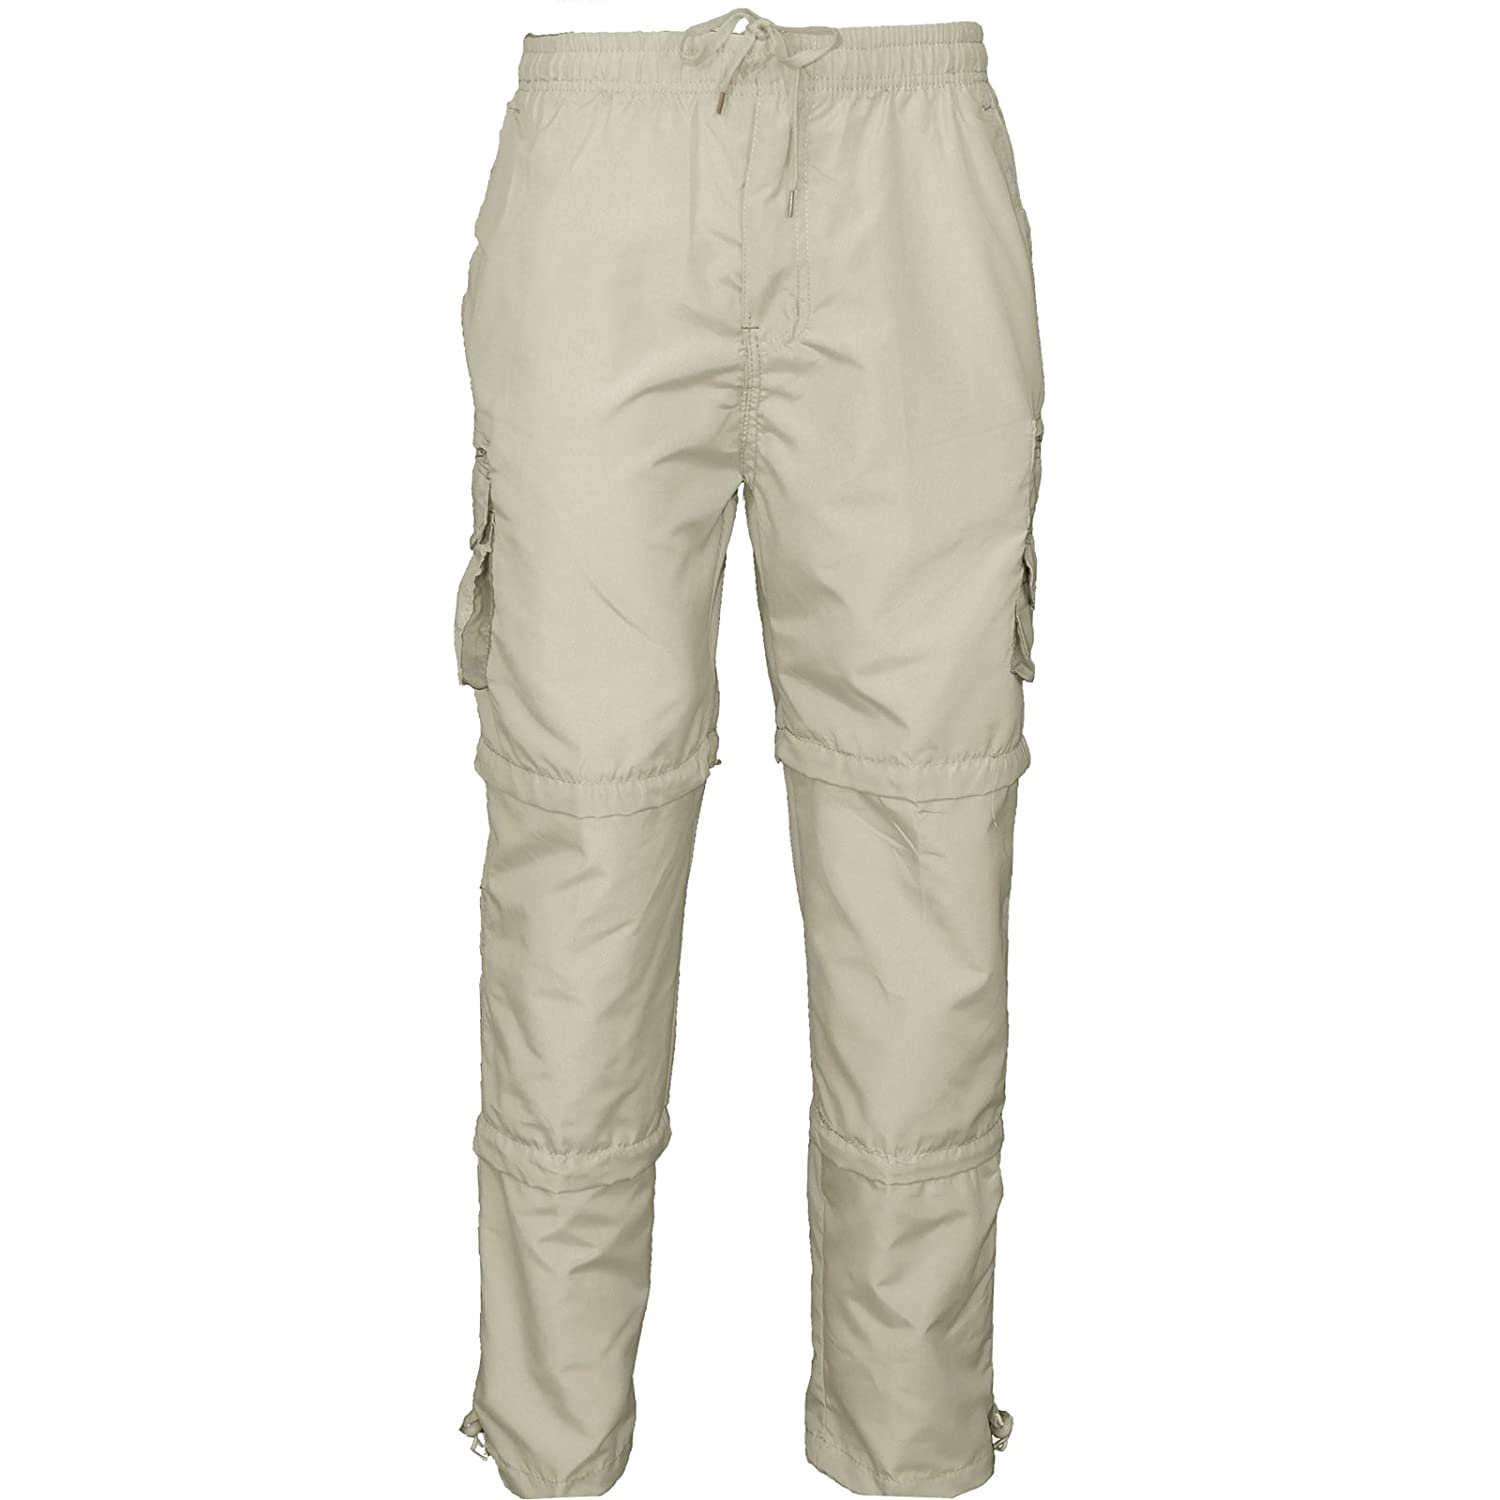 08510cff551a MENS 3 IN 1 TROUSERS SHORTS ZIP OFF COMBAT CARGO SUMMER WORK JOGGING PANTS  M-3XL  Amazon.co.uk  Clothing